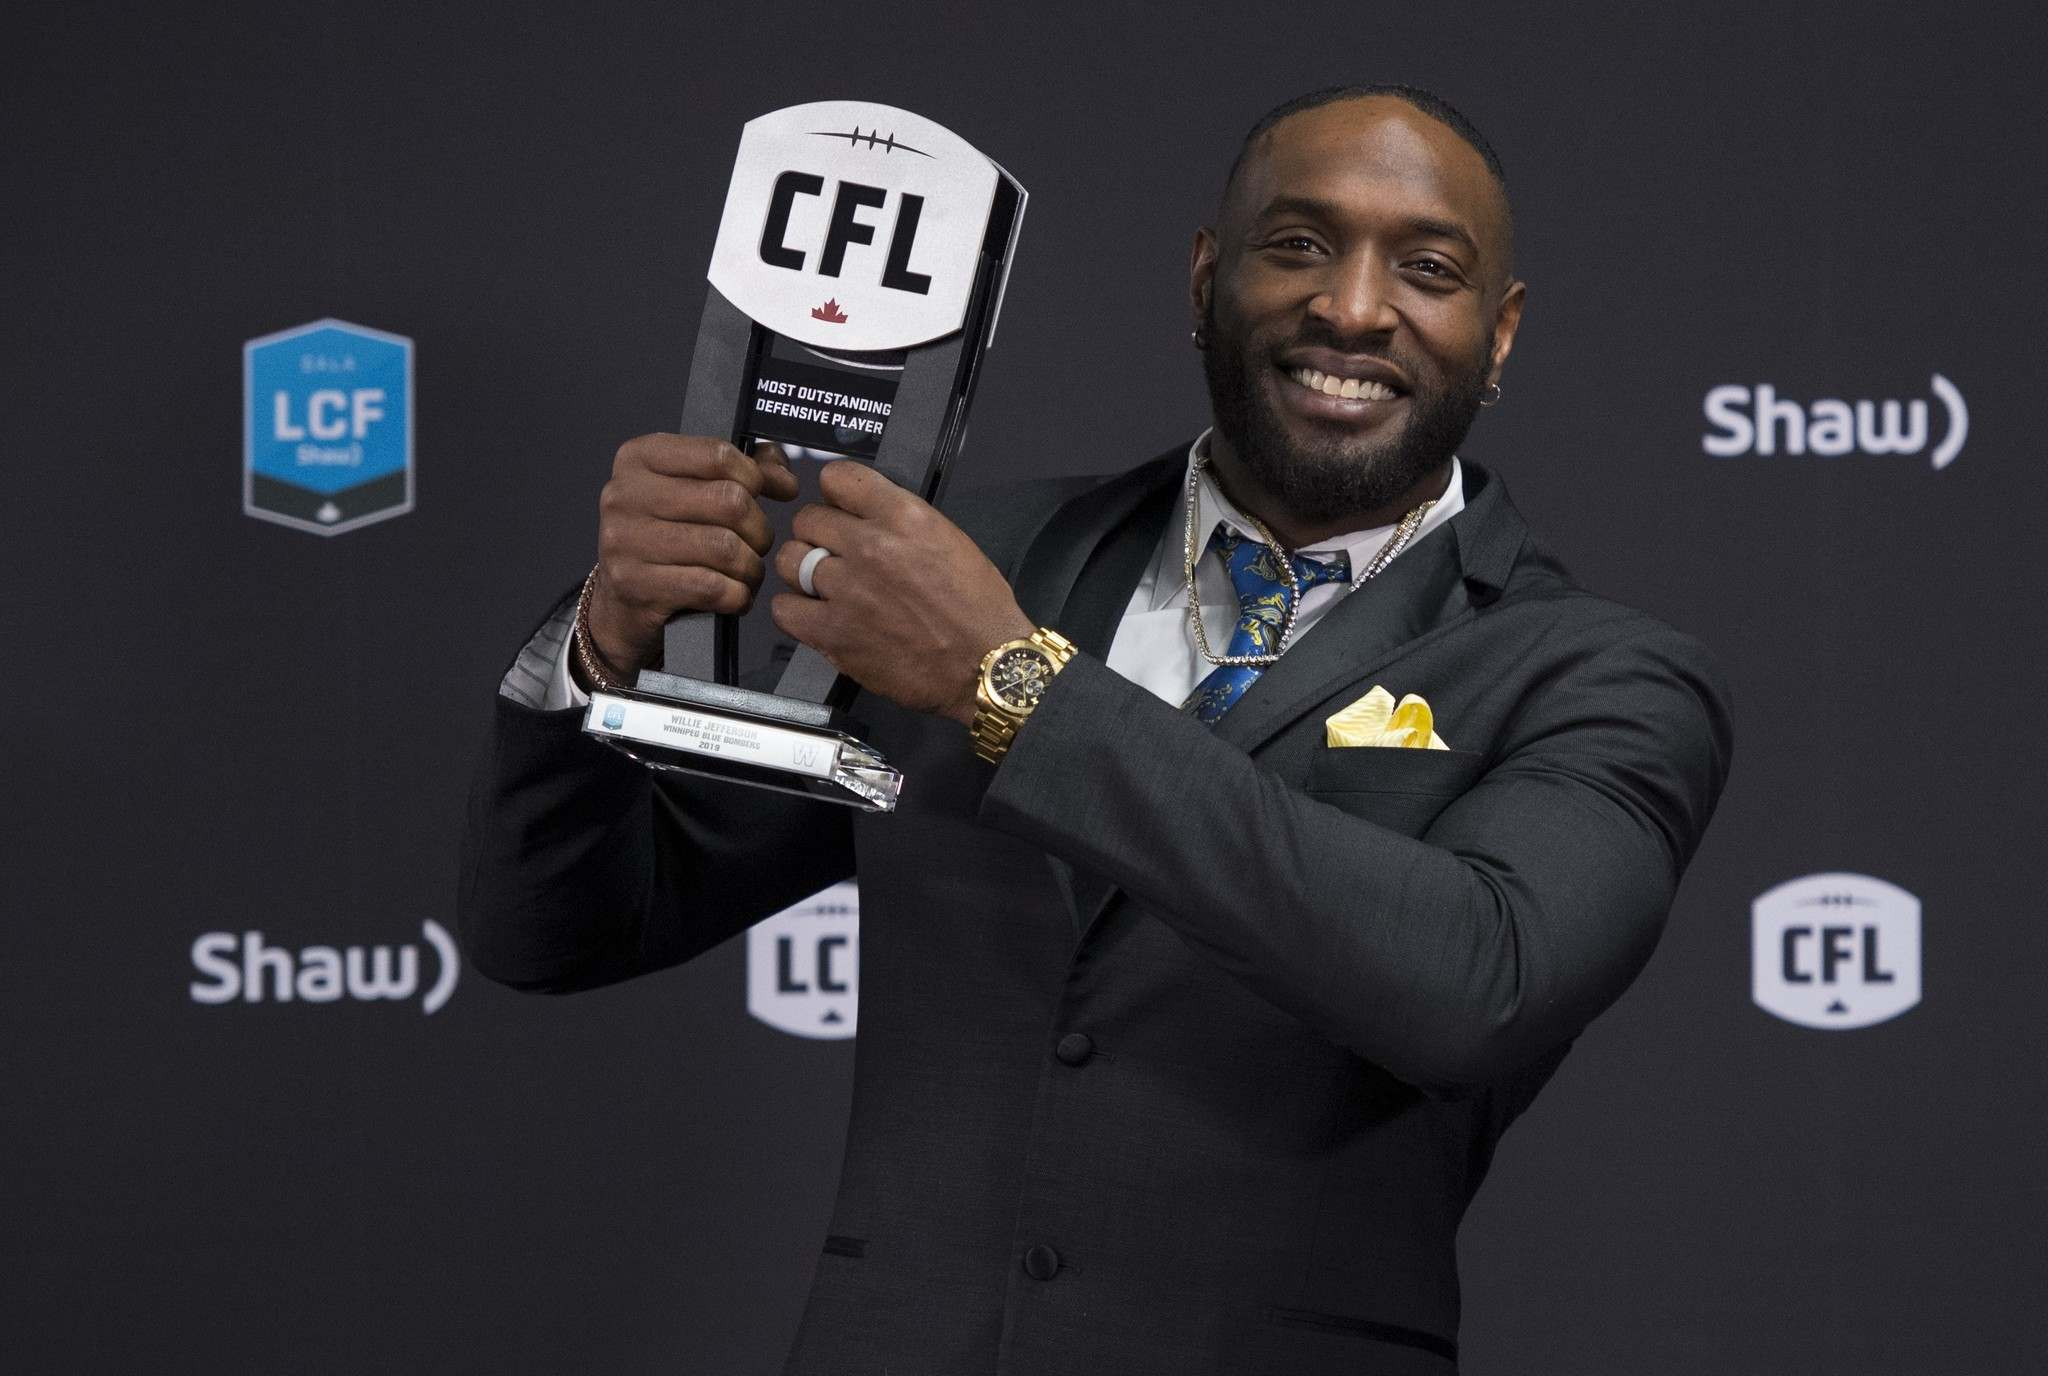 THE CANADIAN PRESS/Nathan Denette</p><p>Winnipeg Blue Bombers defensive lineman Willie Jefferson hoists the trophy for the most outstanding defensive player at the CFL Awards during the CFL's Grey Cup week in Calgary, Thursday.</p>